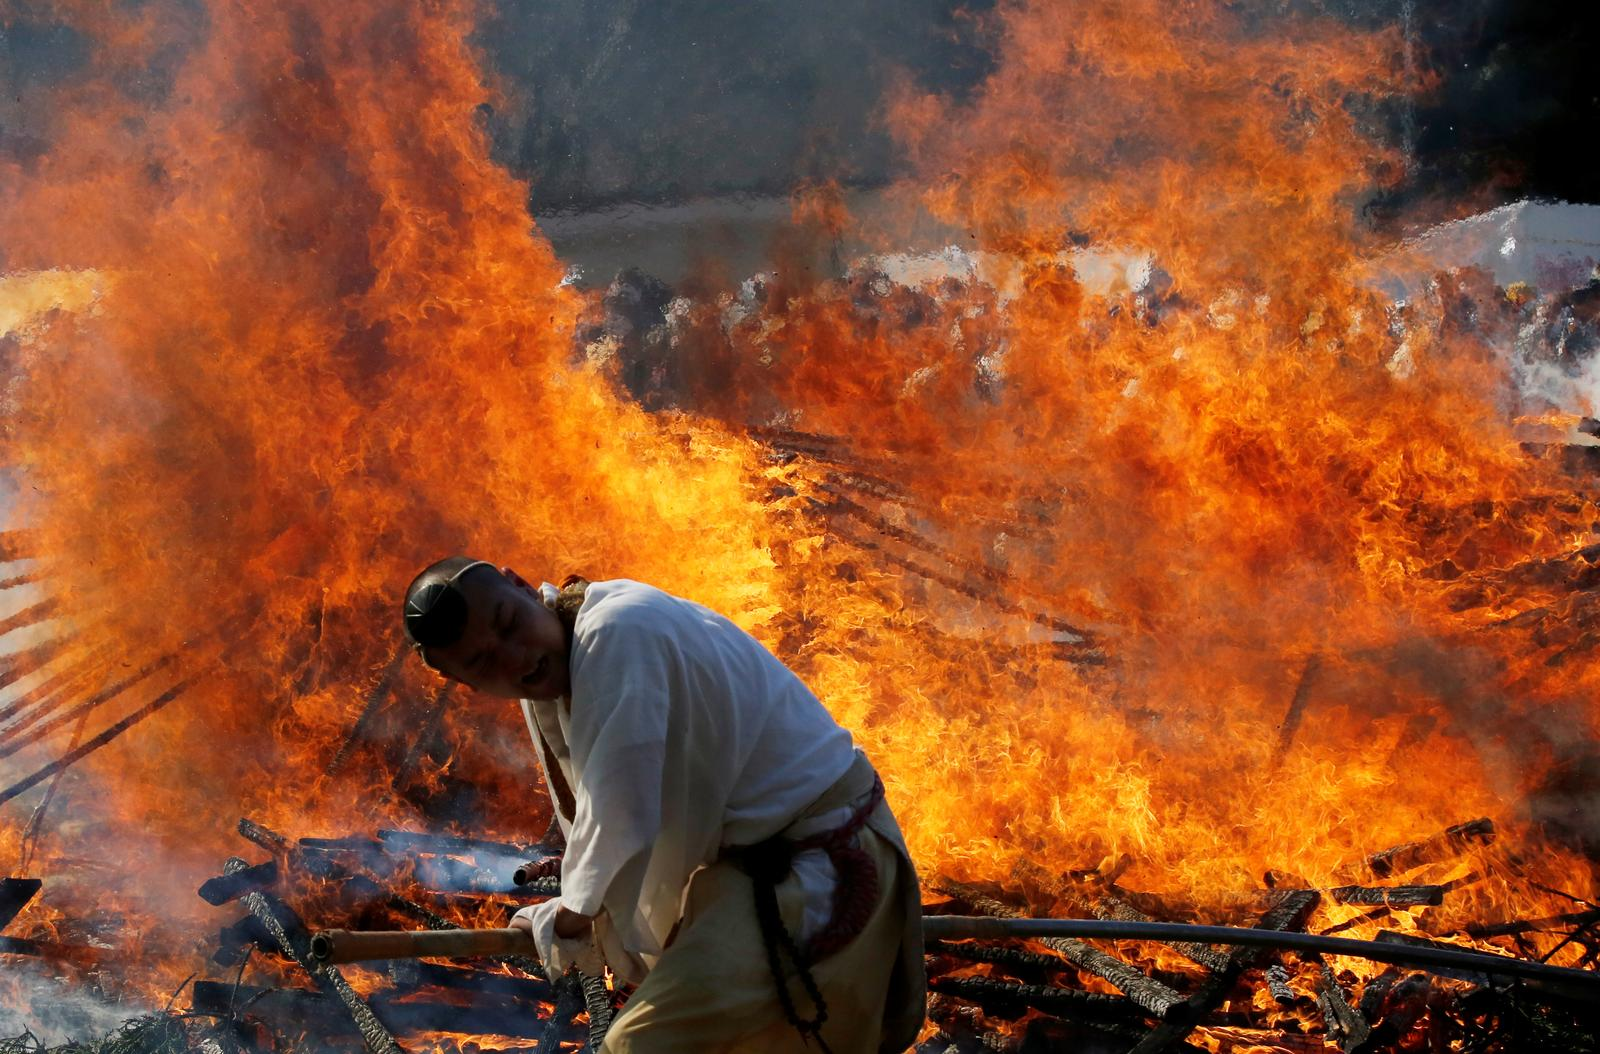 Japan worshippers brave smouldering coals to pray for safety